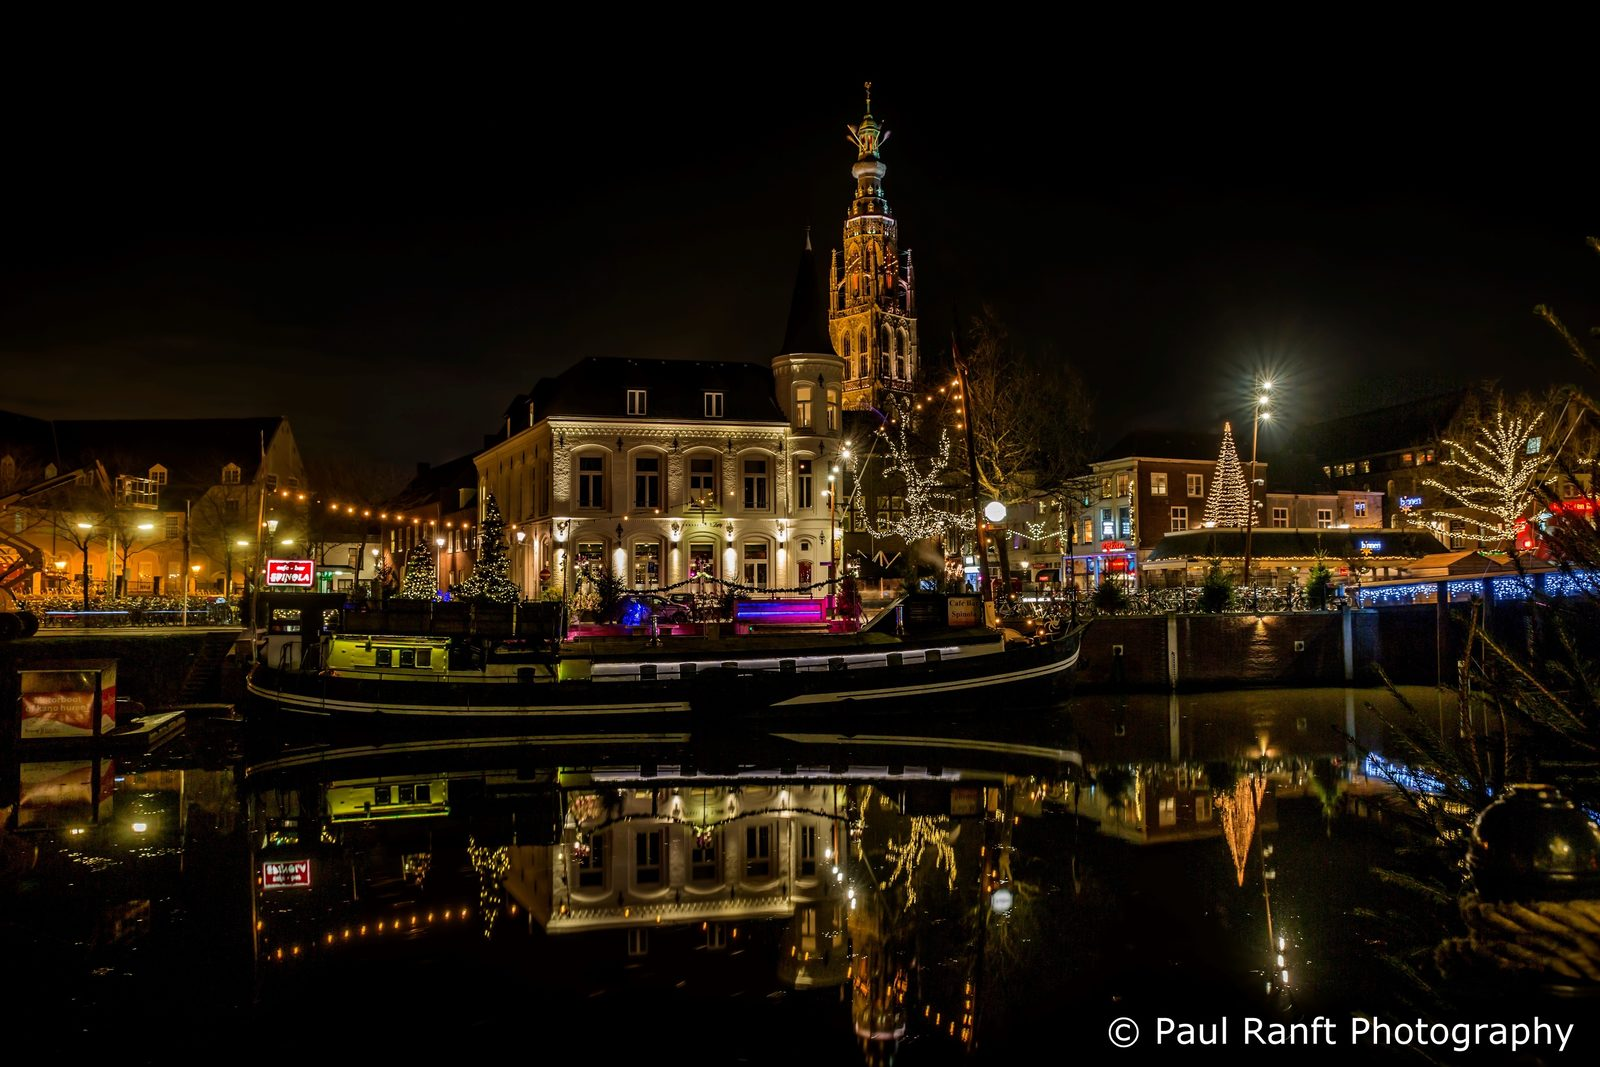 Breda by night, Paul Ranft Photography